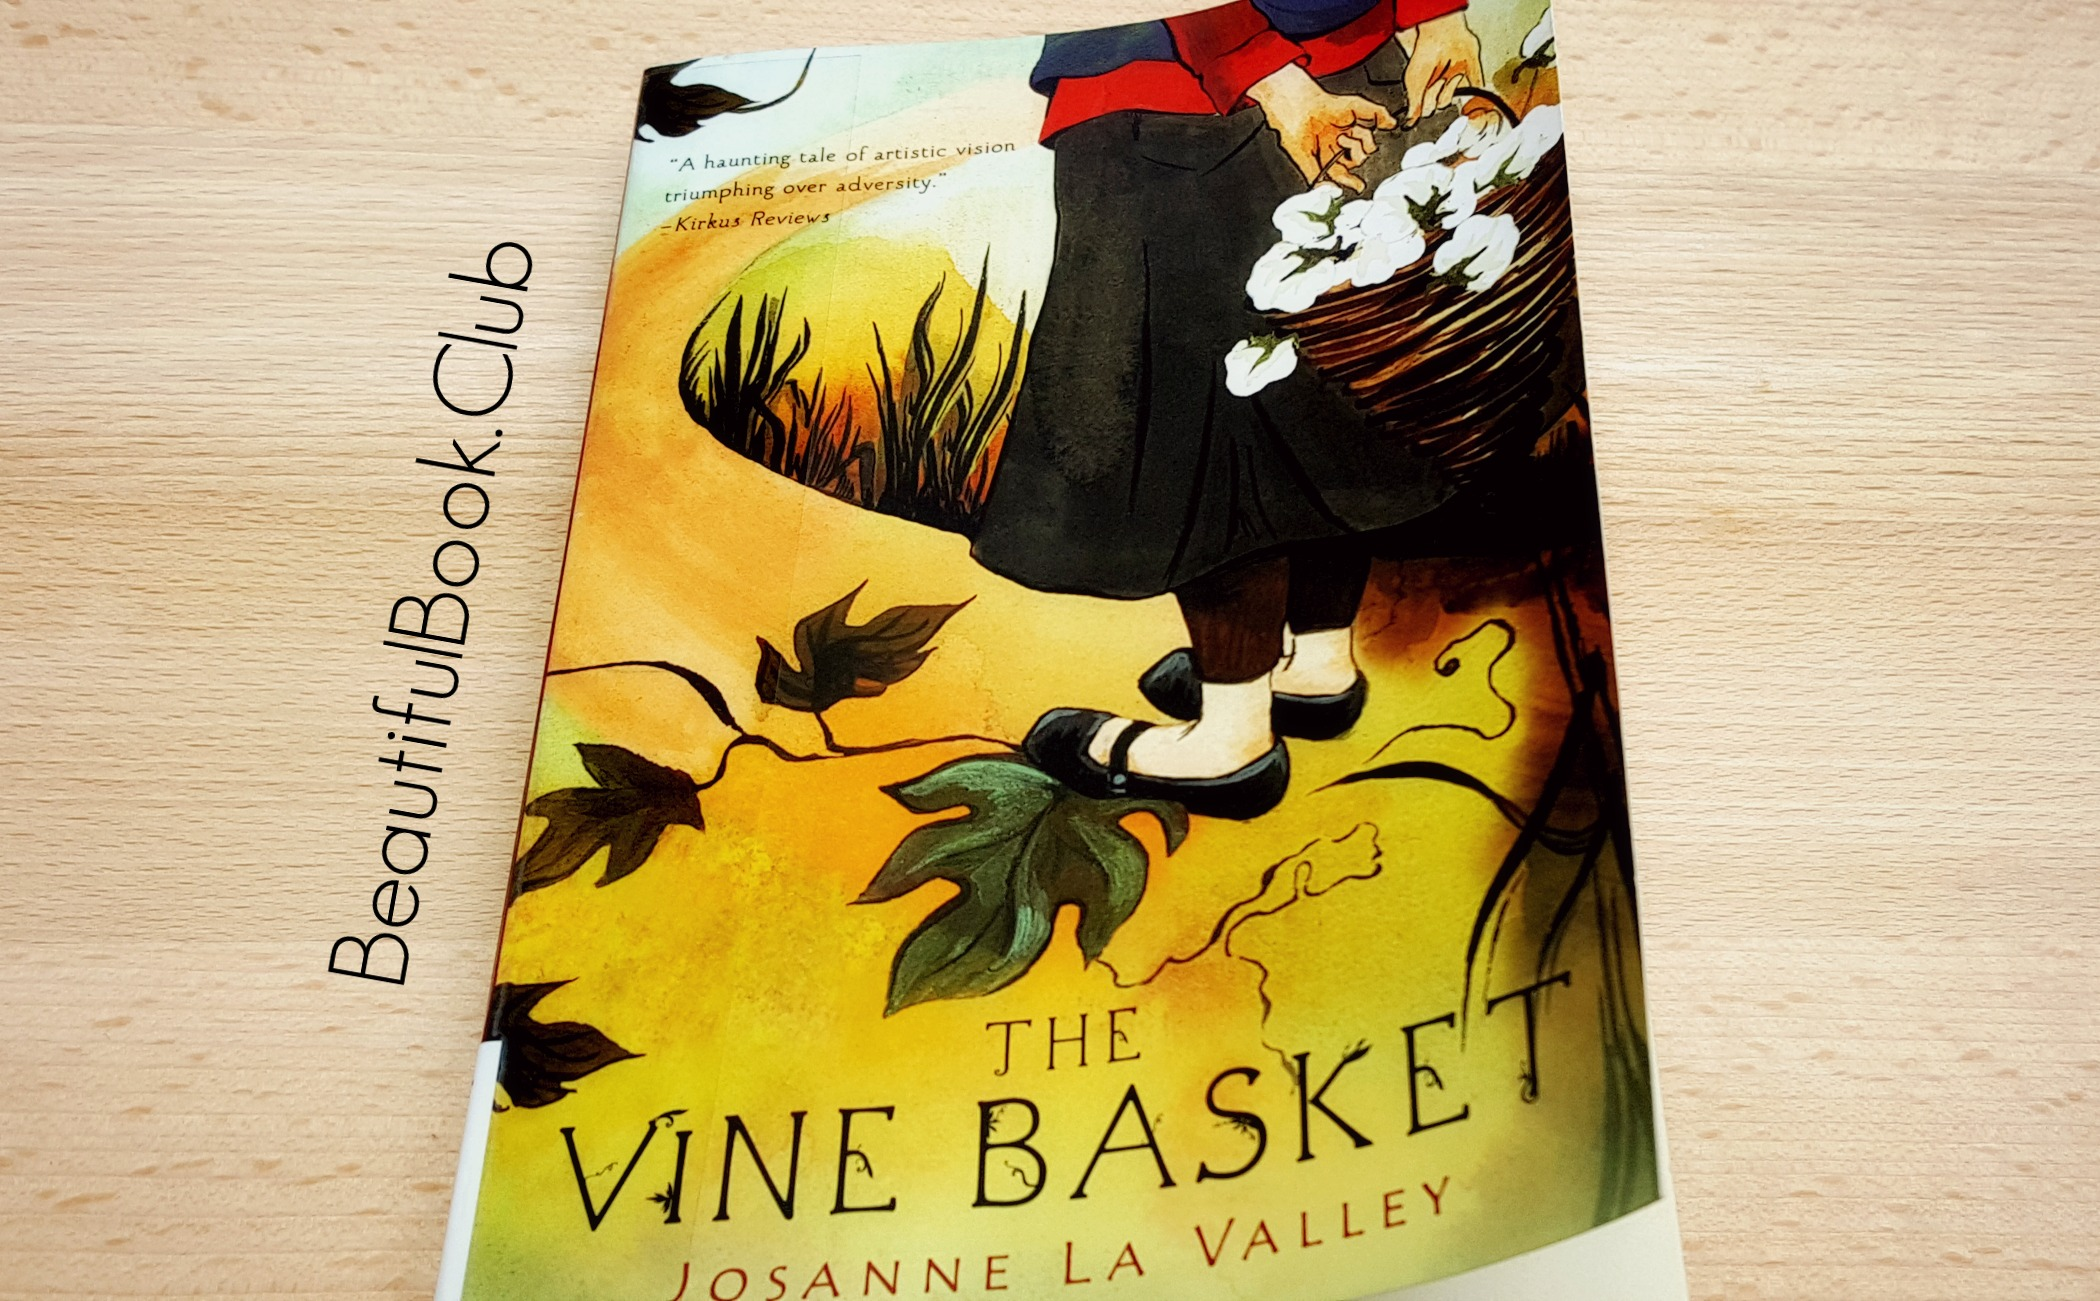 The Vine Basket book cover image